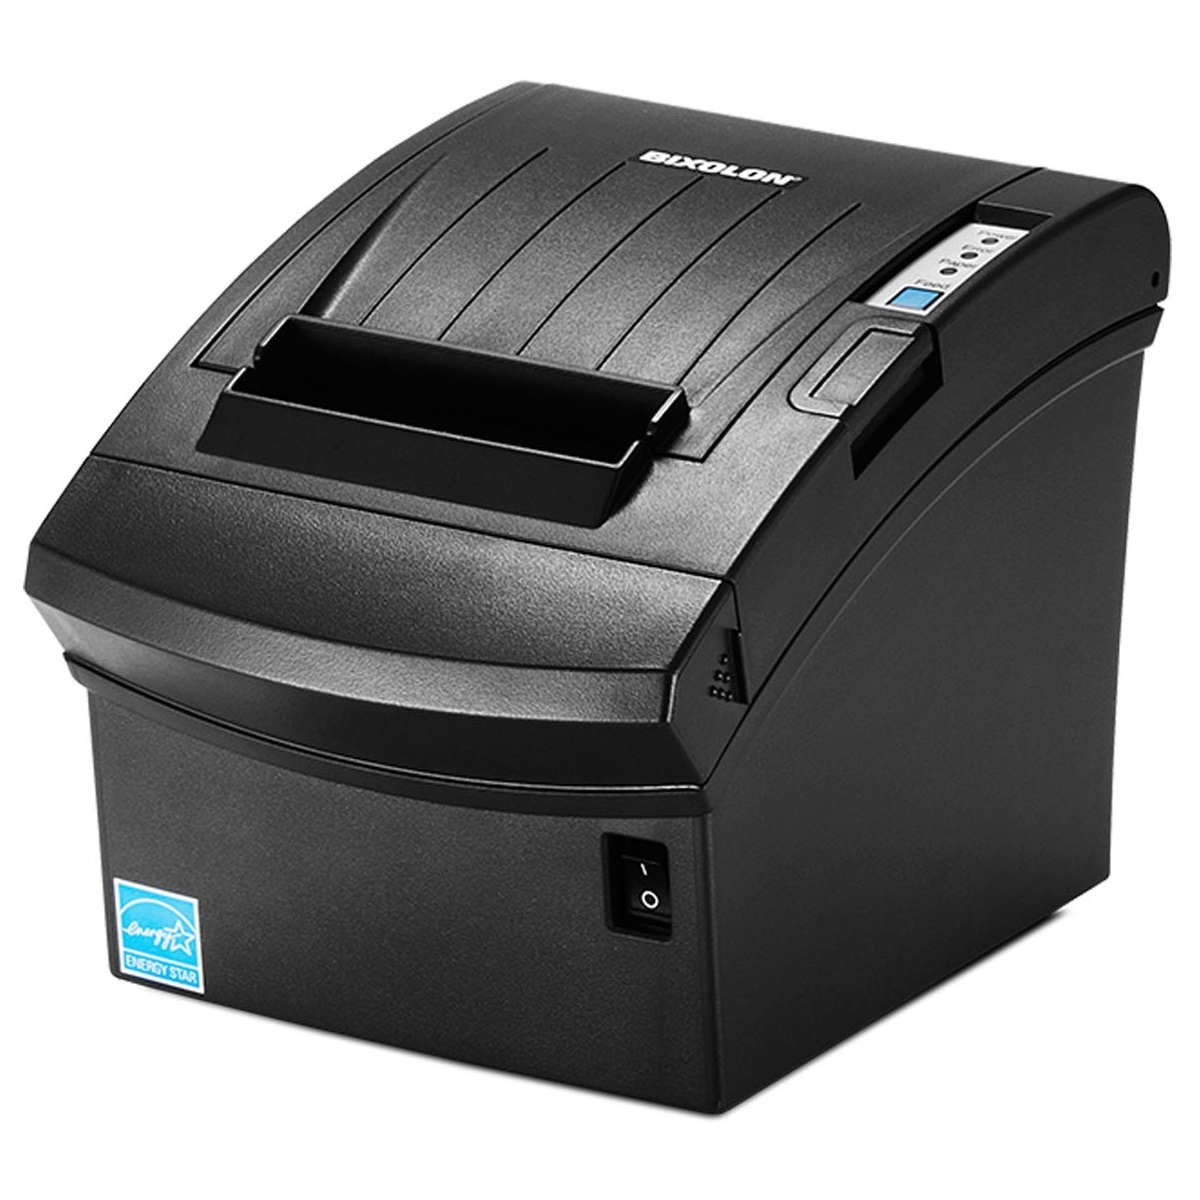 View Bixolon Srp350 Plus III Usb+ser+eth Thermal Receipt Printer